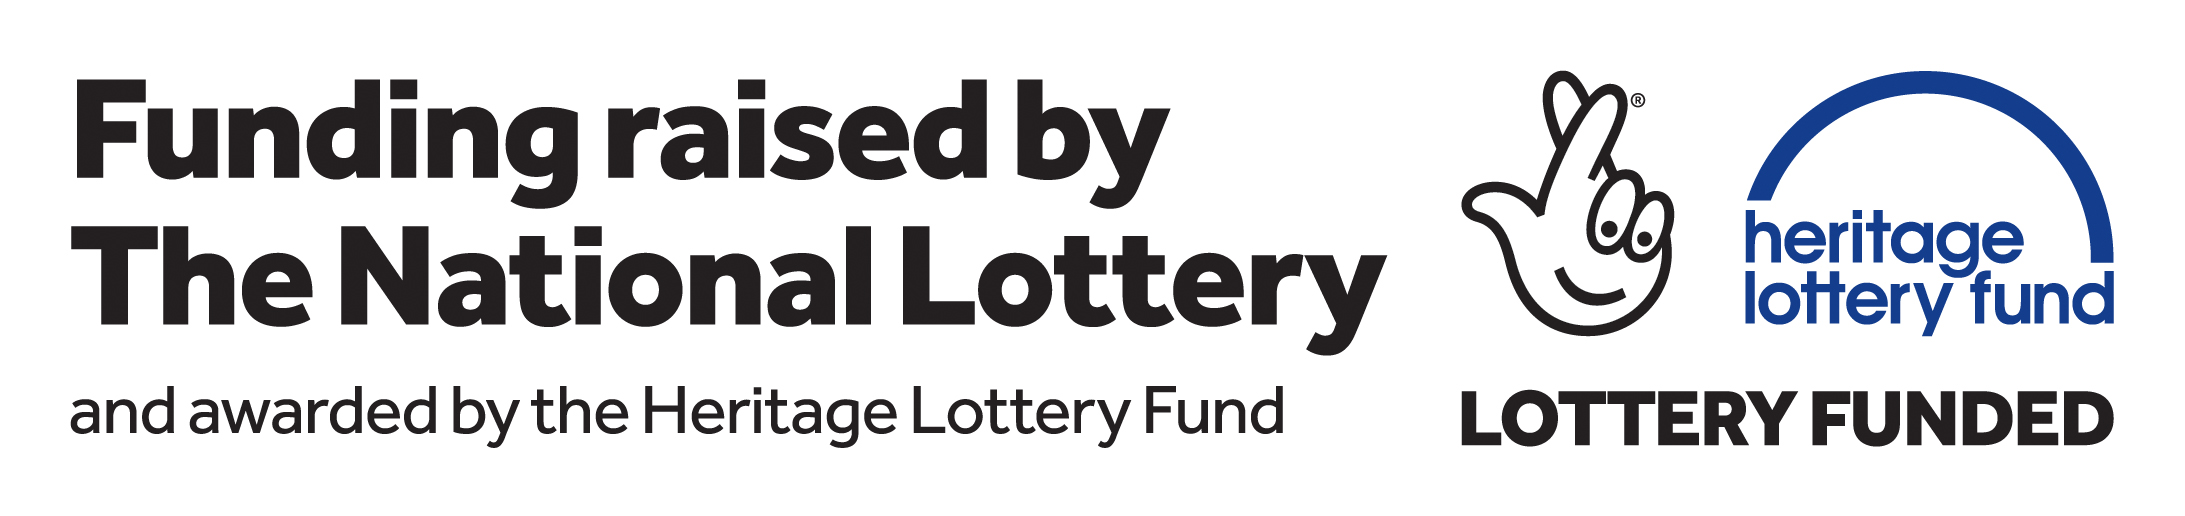 Funded by the Heritage Lottery Fund